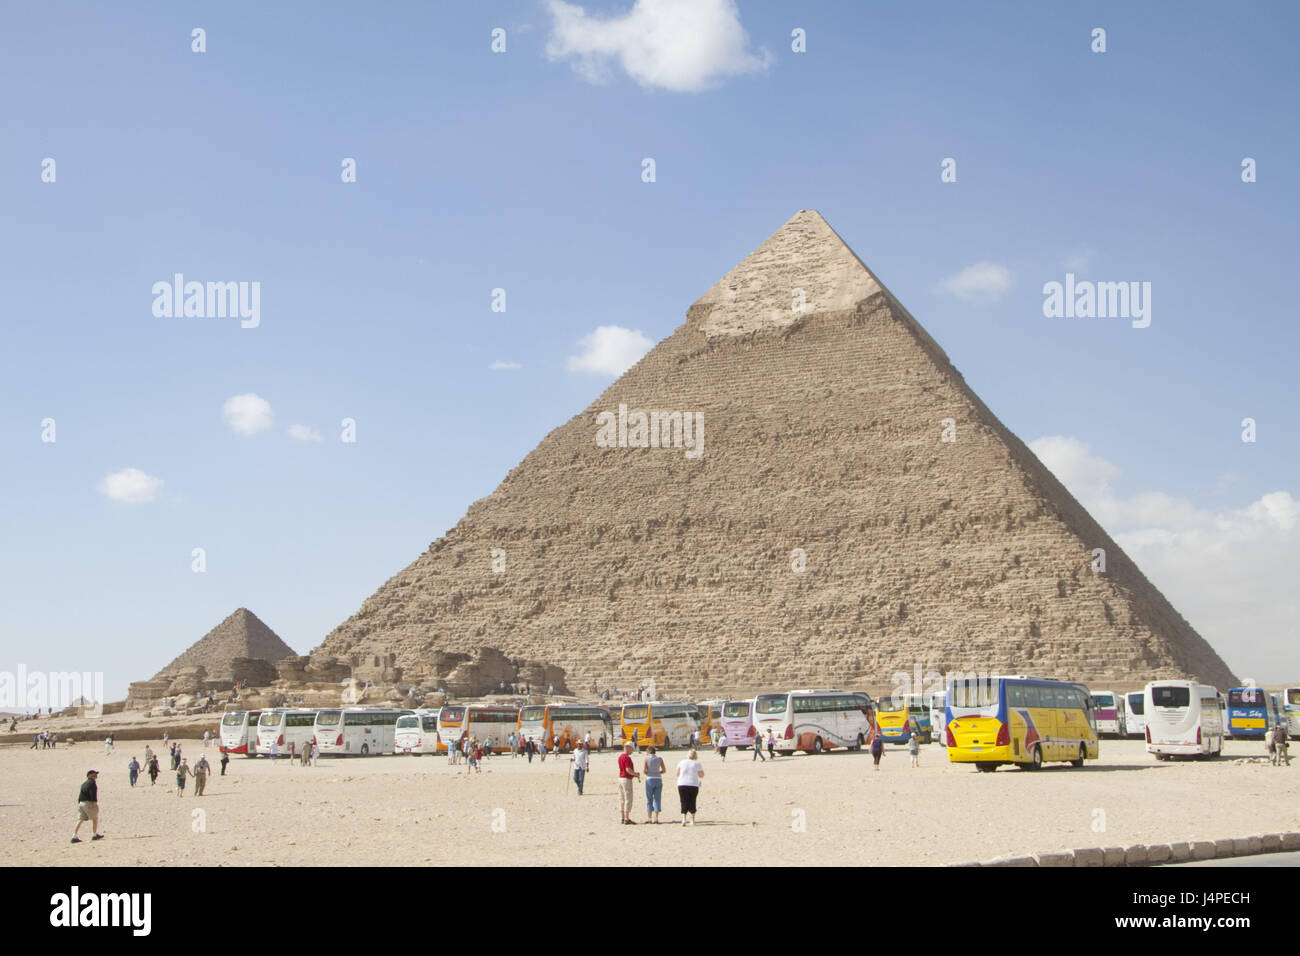 Egypt, pyramids of Gizeh, tour buses, tourists, people, pyramids, holiday buses, park, places of interest, excursion, - Stock Image